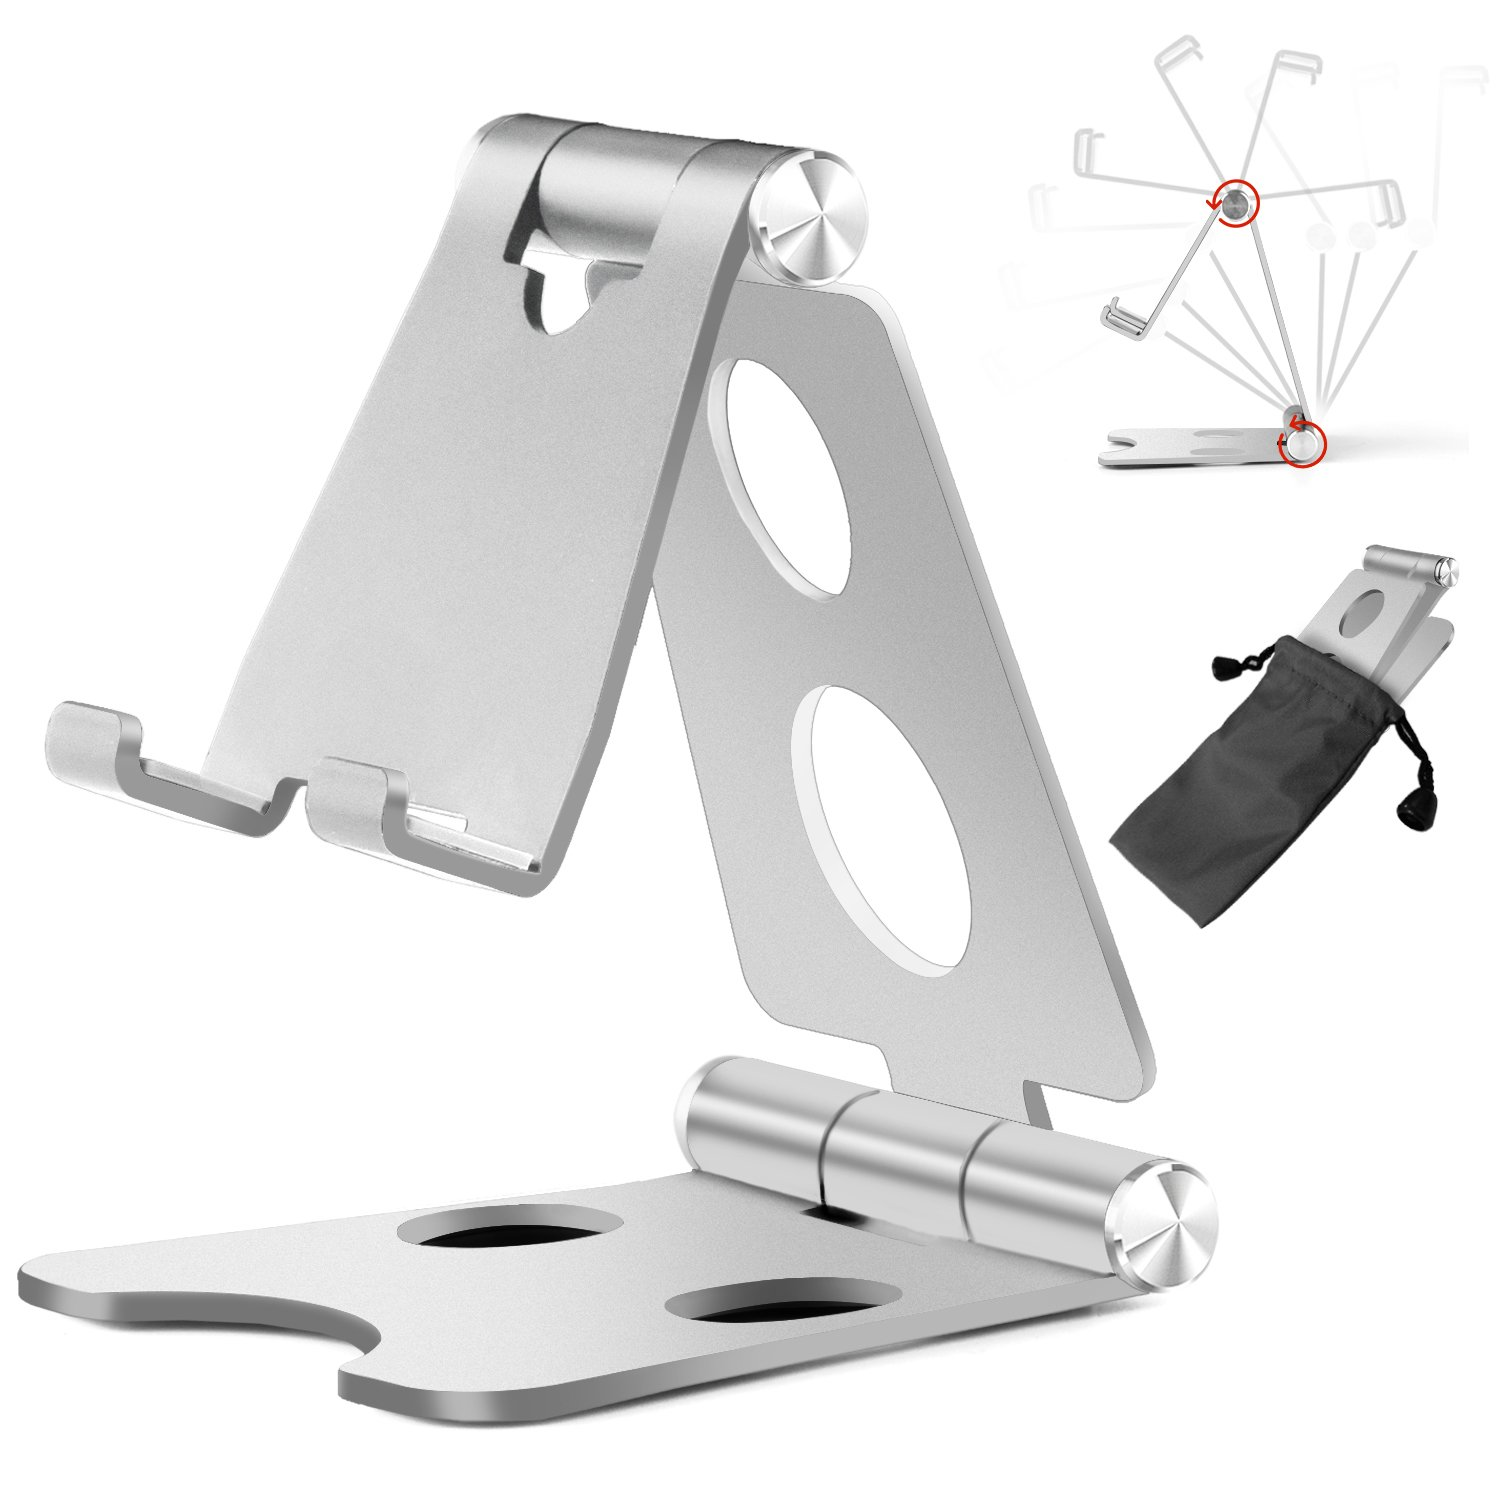 Cell Phone Stand, Multi-Angle Foldable Adjustable Aluminum Mobile Phone Tablet(4-10'') Holder Desktop Dock Compatible iPhone x 8 7 6 Plus iPad Mini, Accessories Desk - Silver